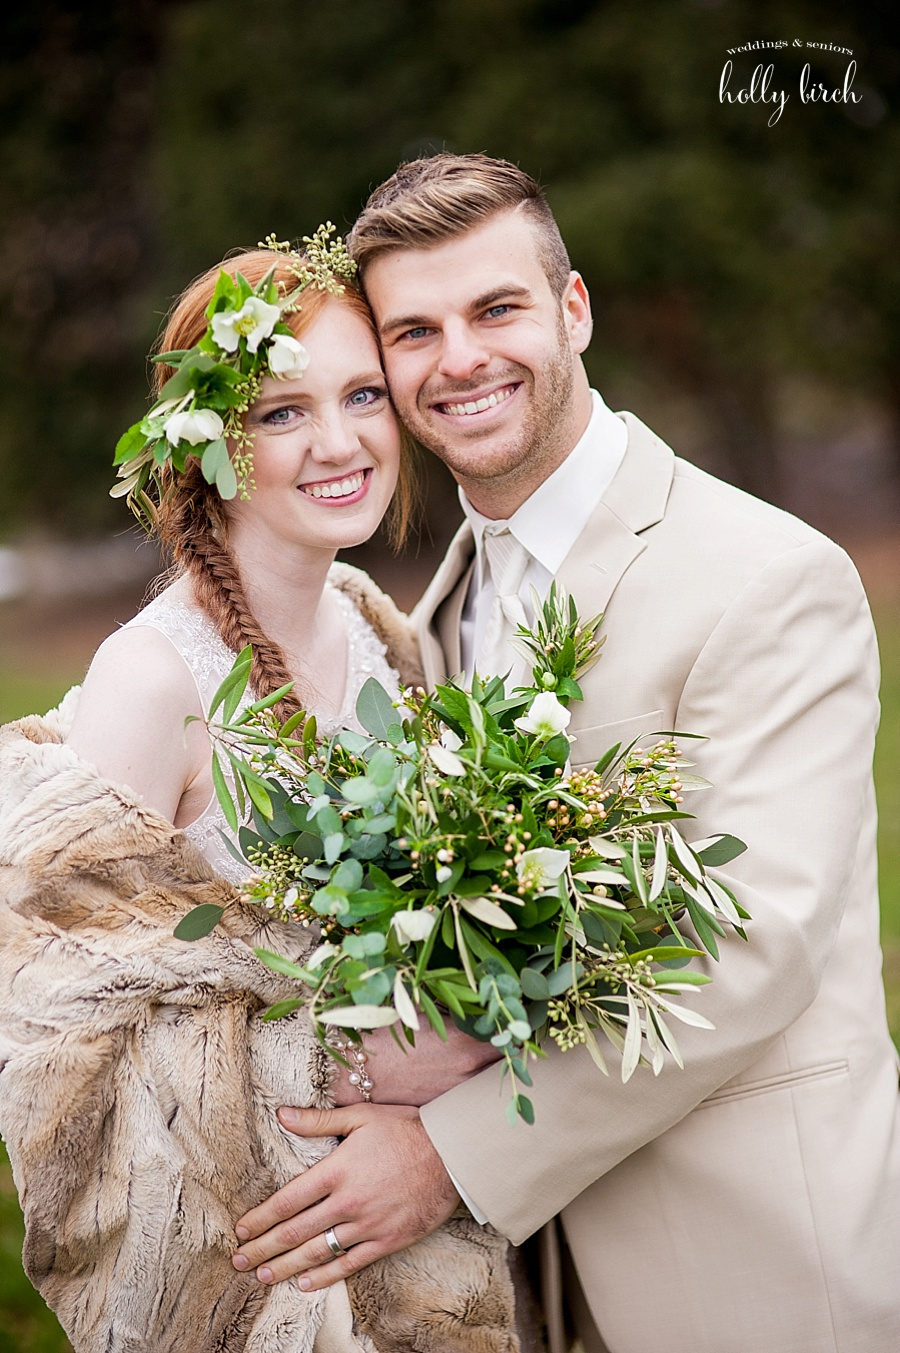 couple with greenery floral accents